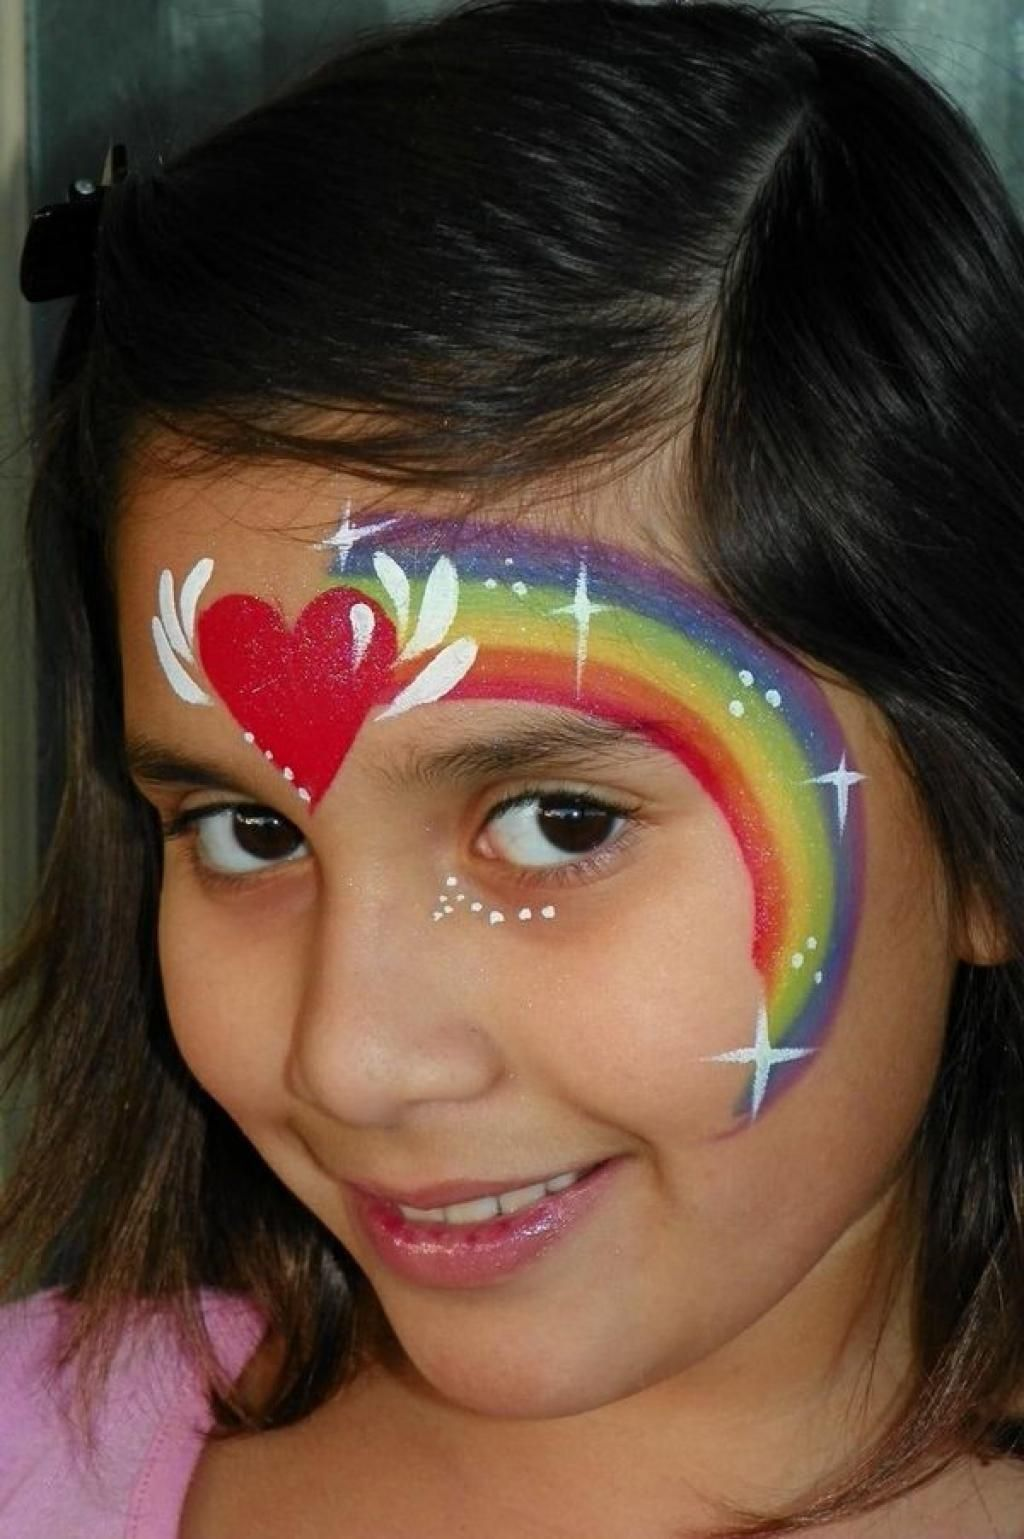 Pin By Carole Giguere On Face Paint Girl Face Painting Face Painting Designs Face Painting Easy